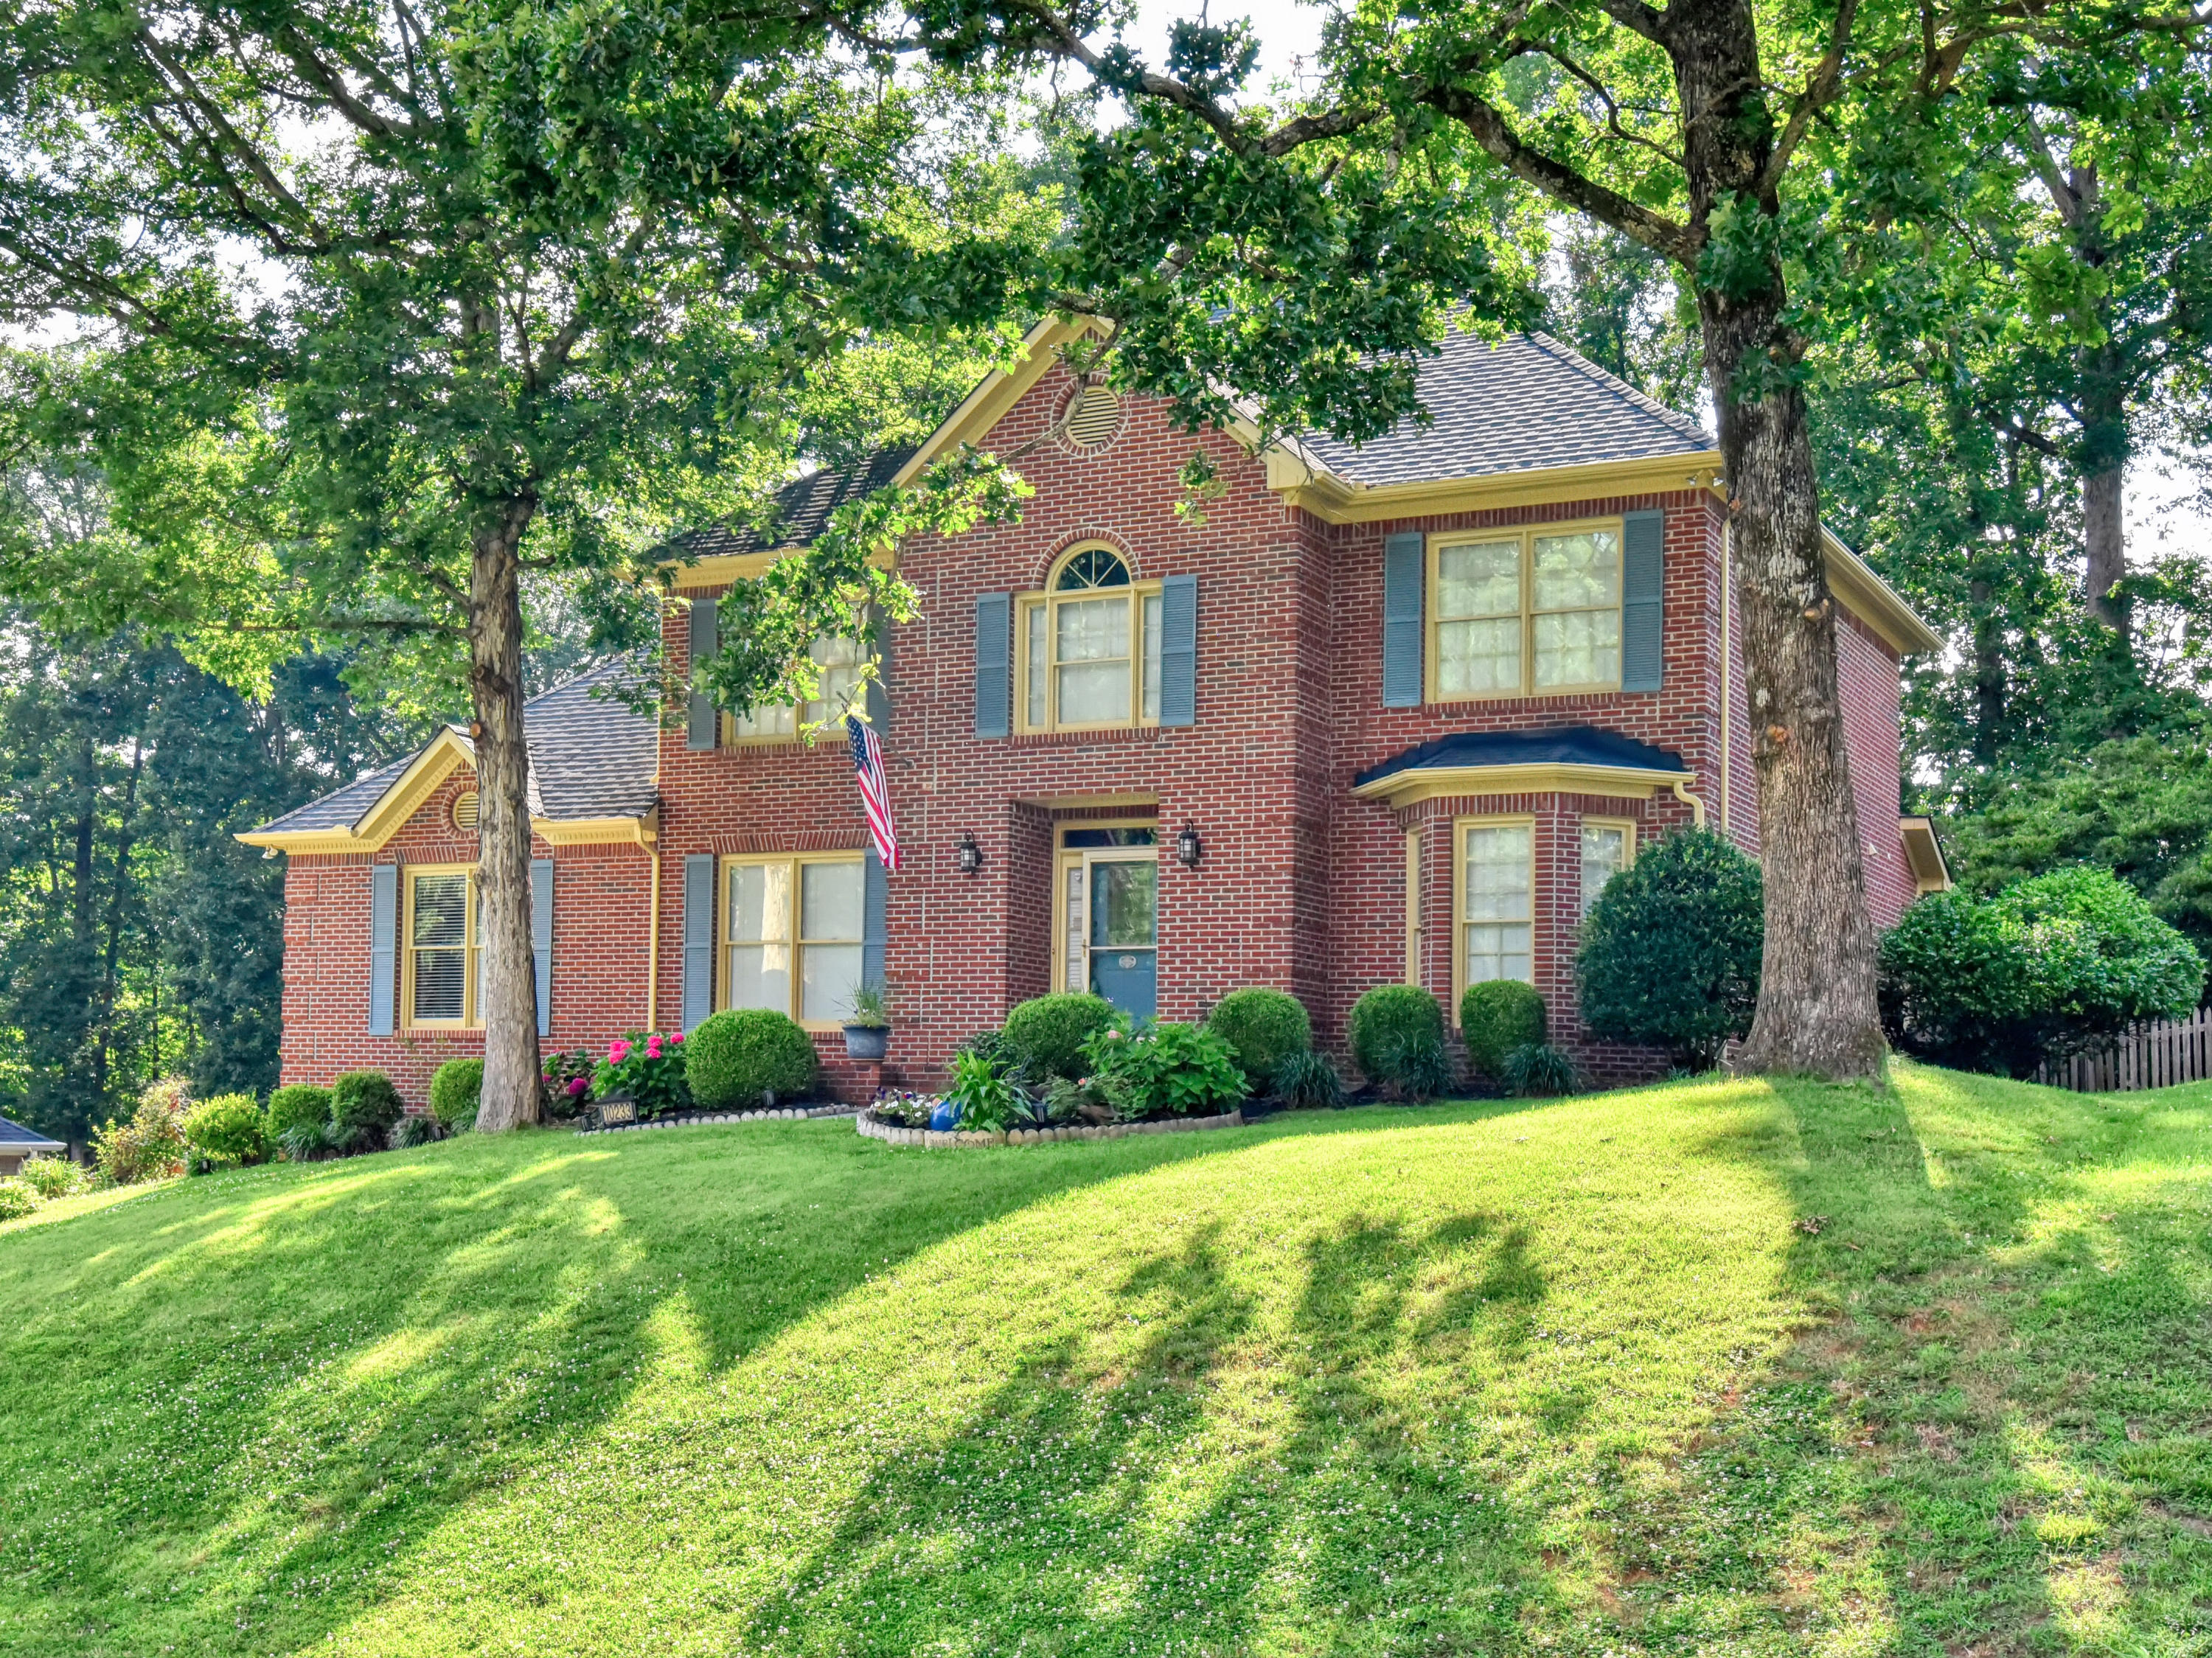 10233 Tan Rara, Knoxville, Tennessee, United States 37922, 4 Bedrooms Bedrooms, ,4 BathroomsBathrooms,Single Family,For Sale,Tan Rara,1122327